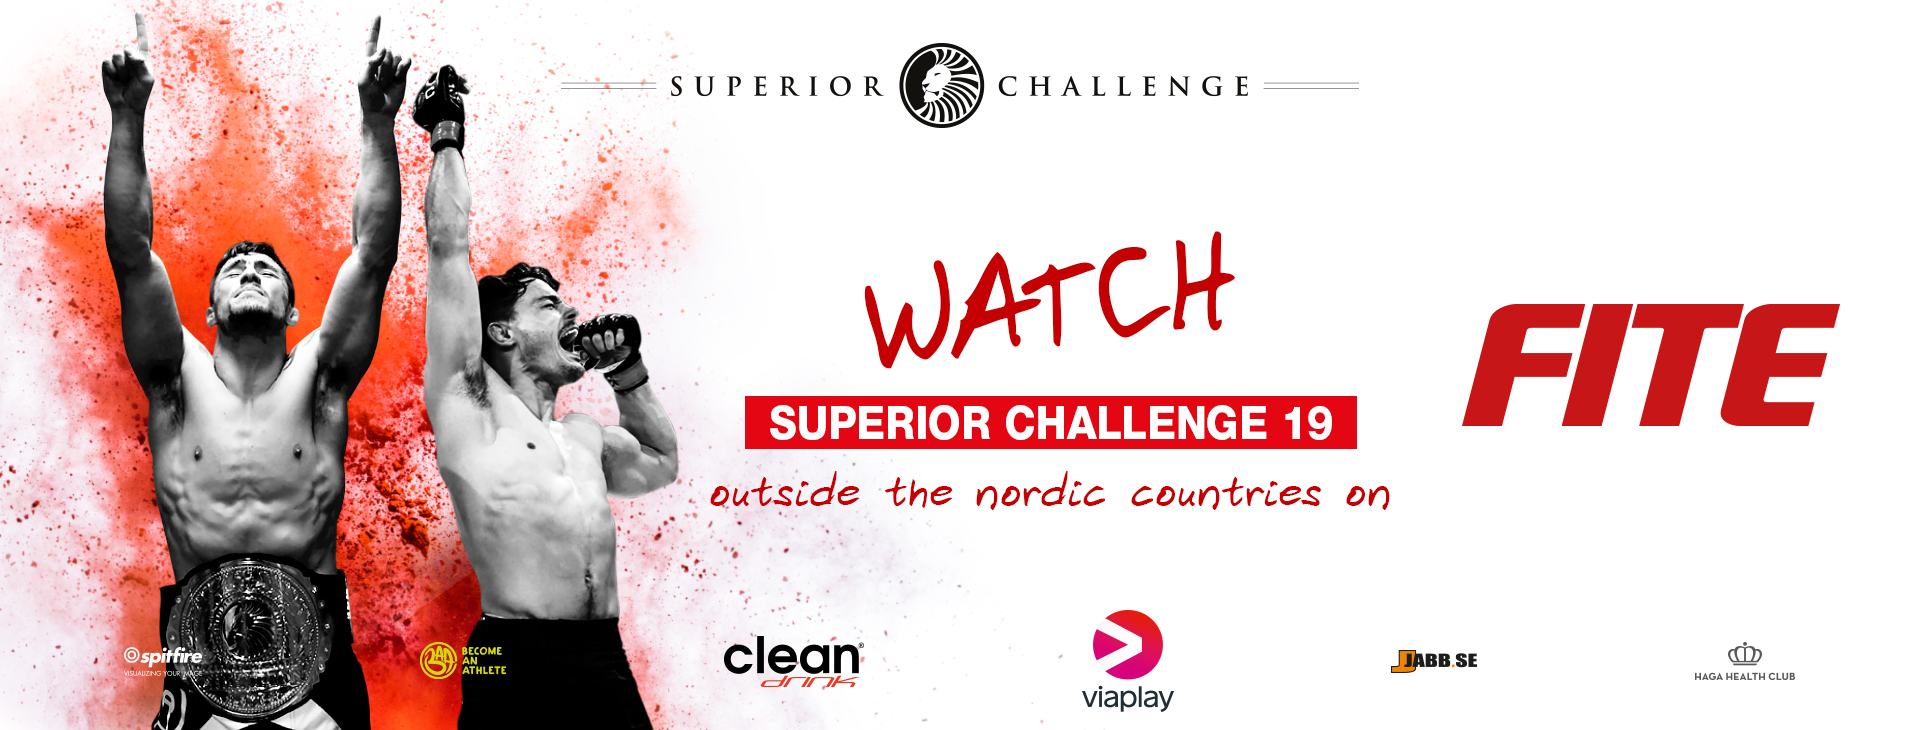 Watch Superior Challenge 19 outside the nordic countries on Fite TV